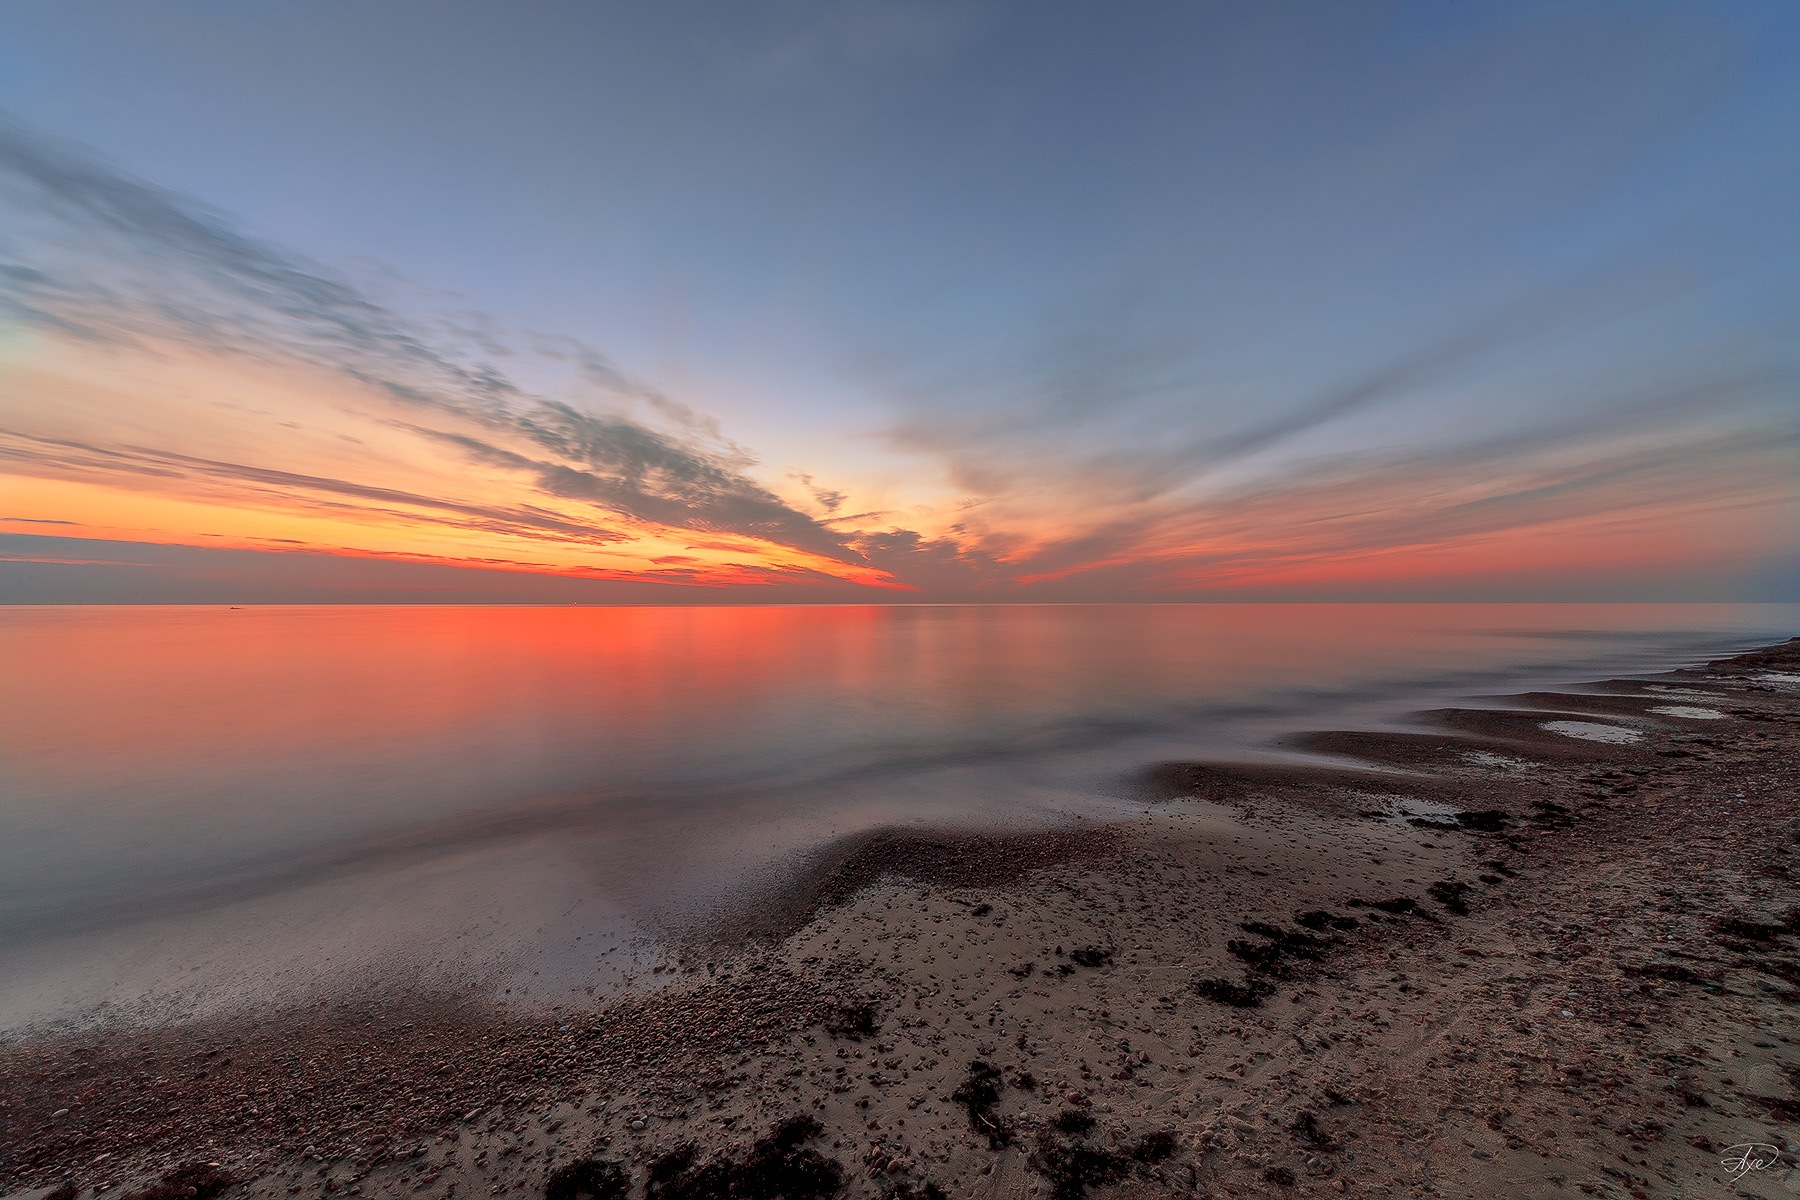 Baltic Patterns by Ruslan  Bolgov (Axe Photography)